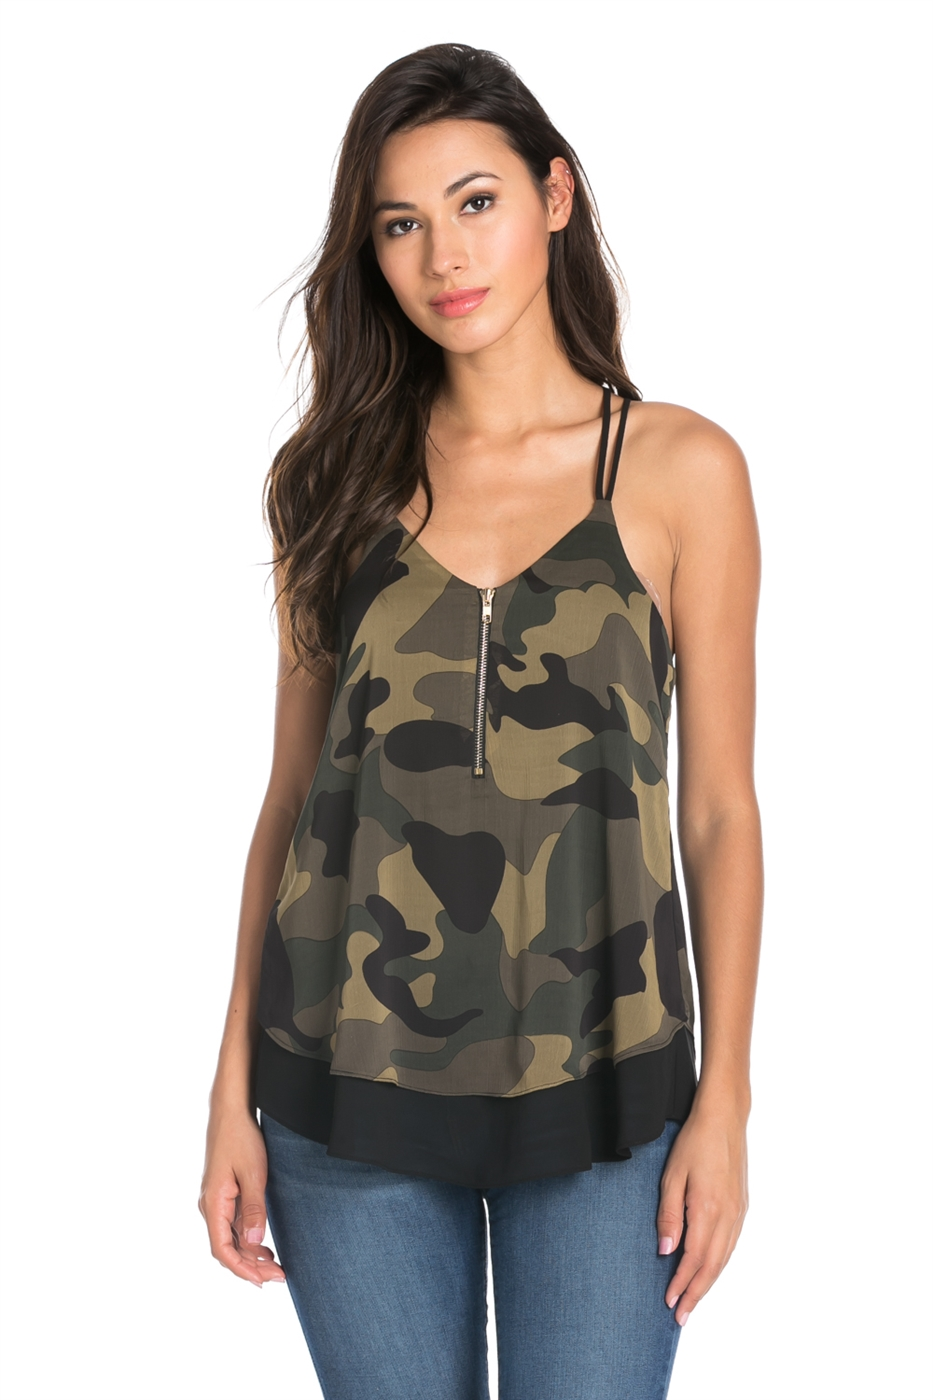 CAMO PRINT SLEEVELESS TOP - orangeshine.com